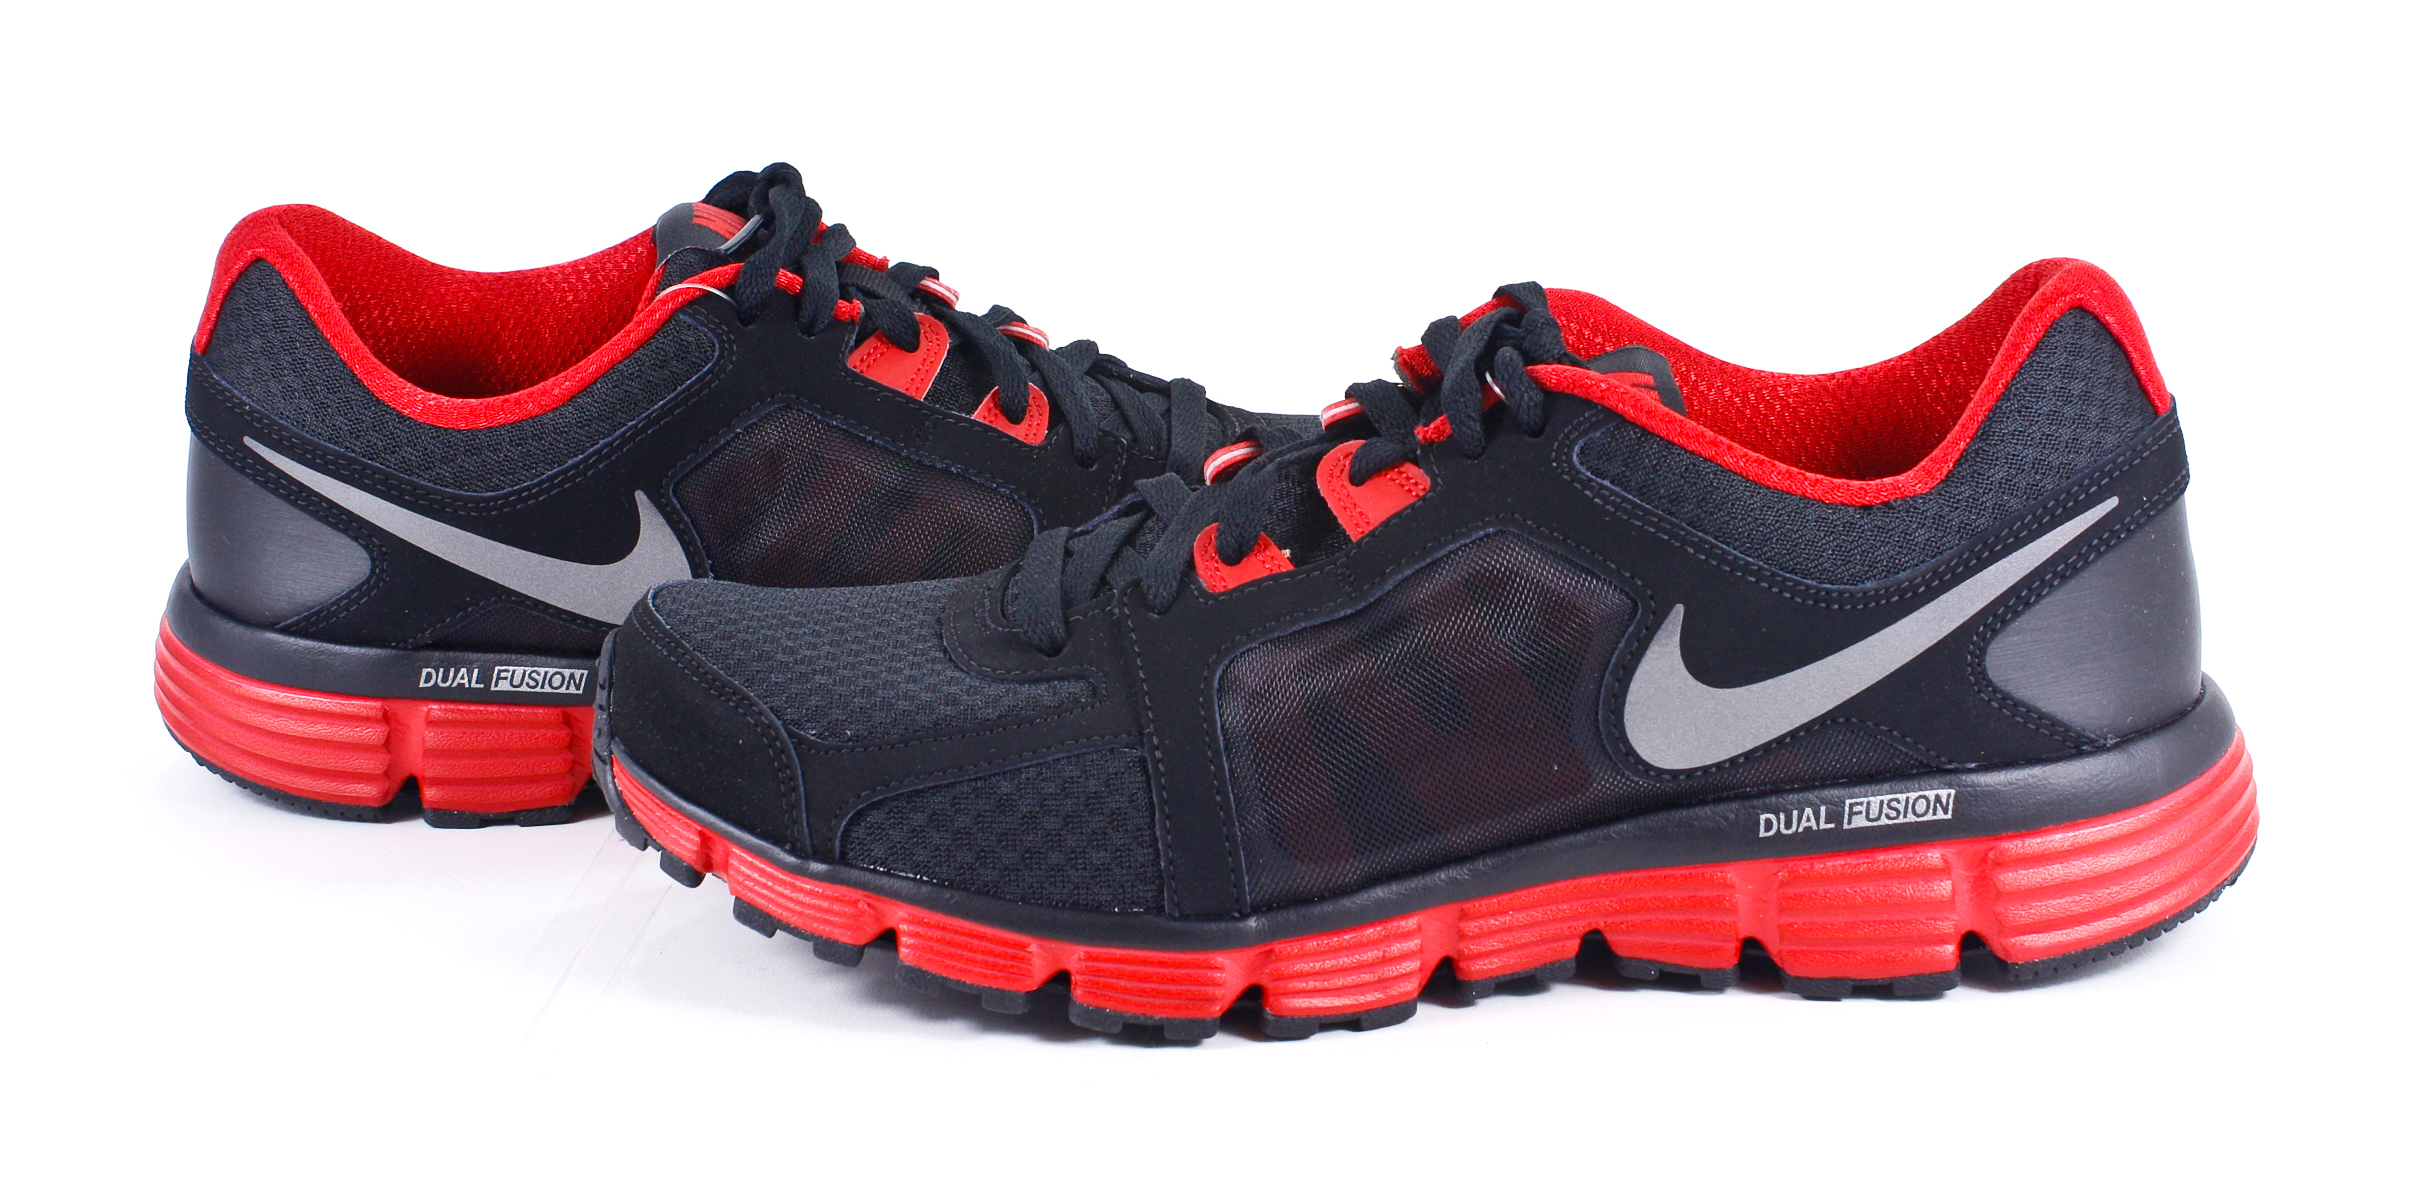 Nike Air Max 2017 Mens Red and Black Sneakers Running